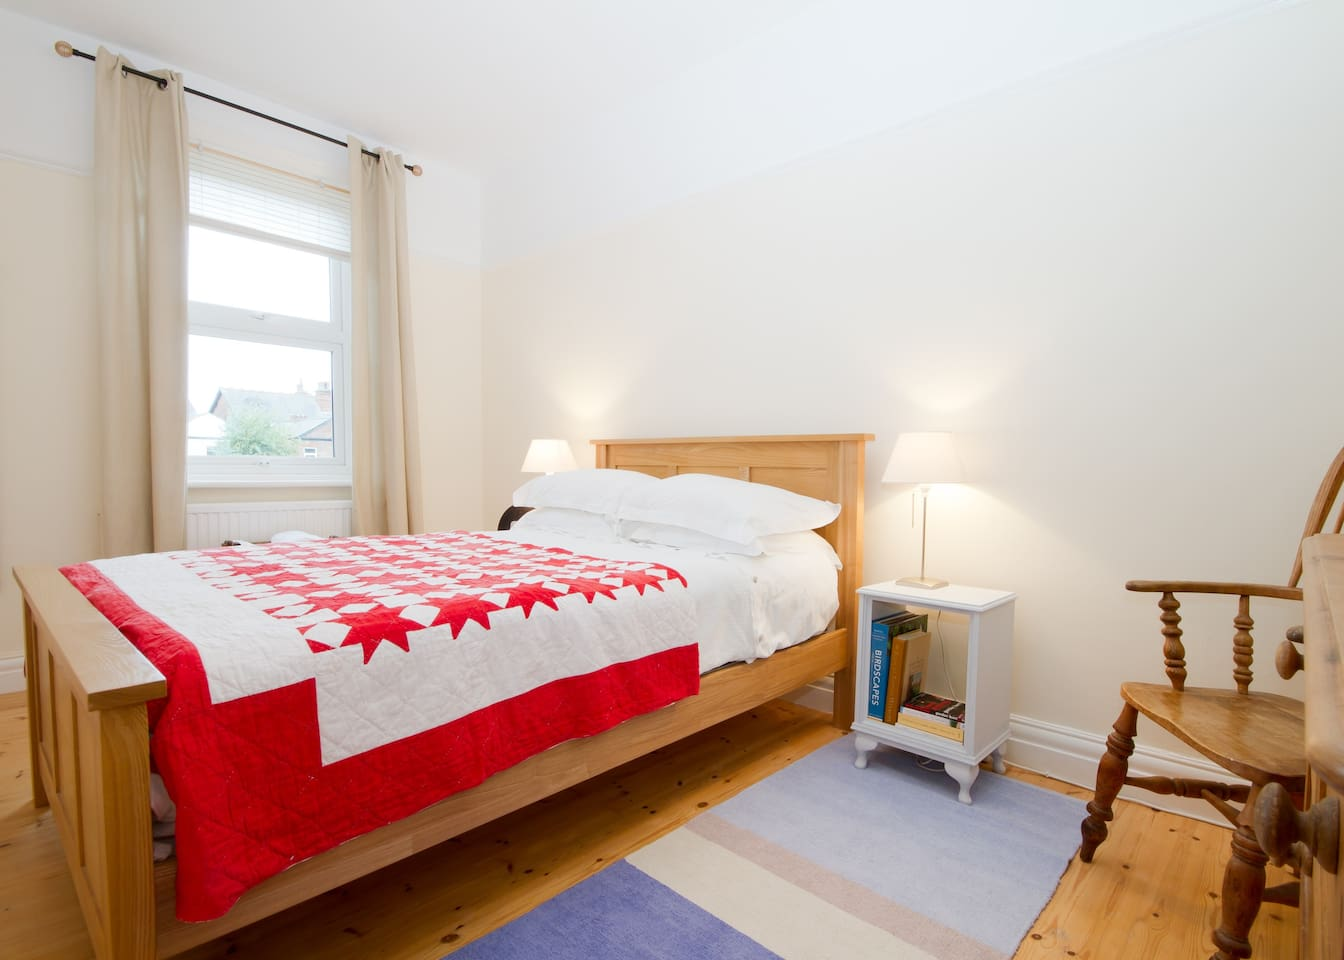 Double room, overlooking the back garden with wardrobe, chest of drawers and desk.